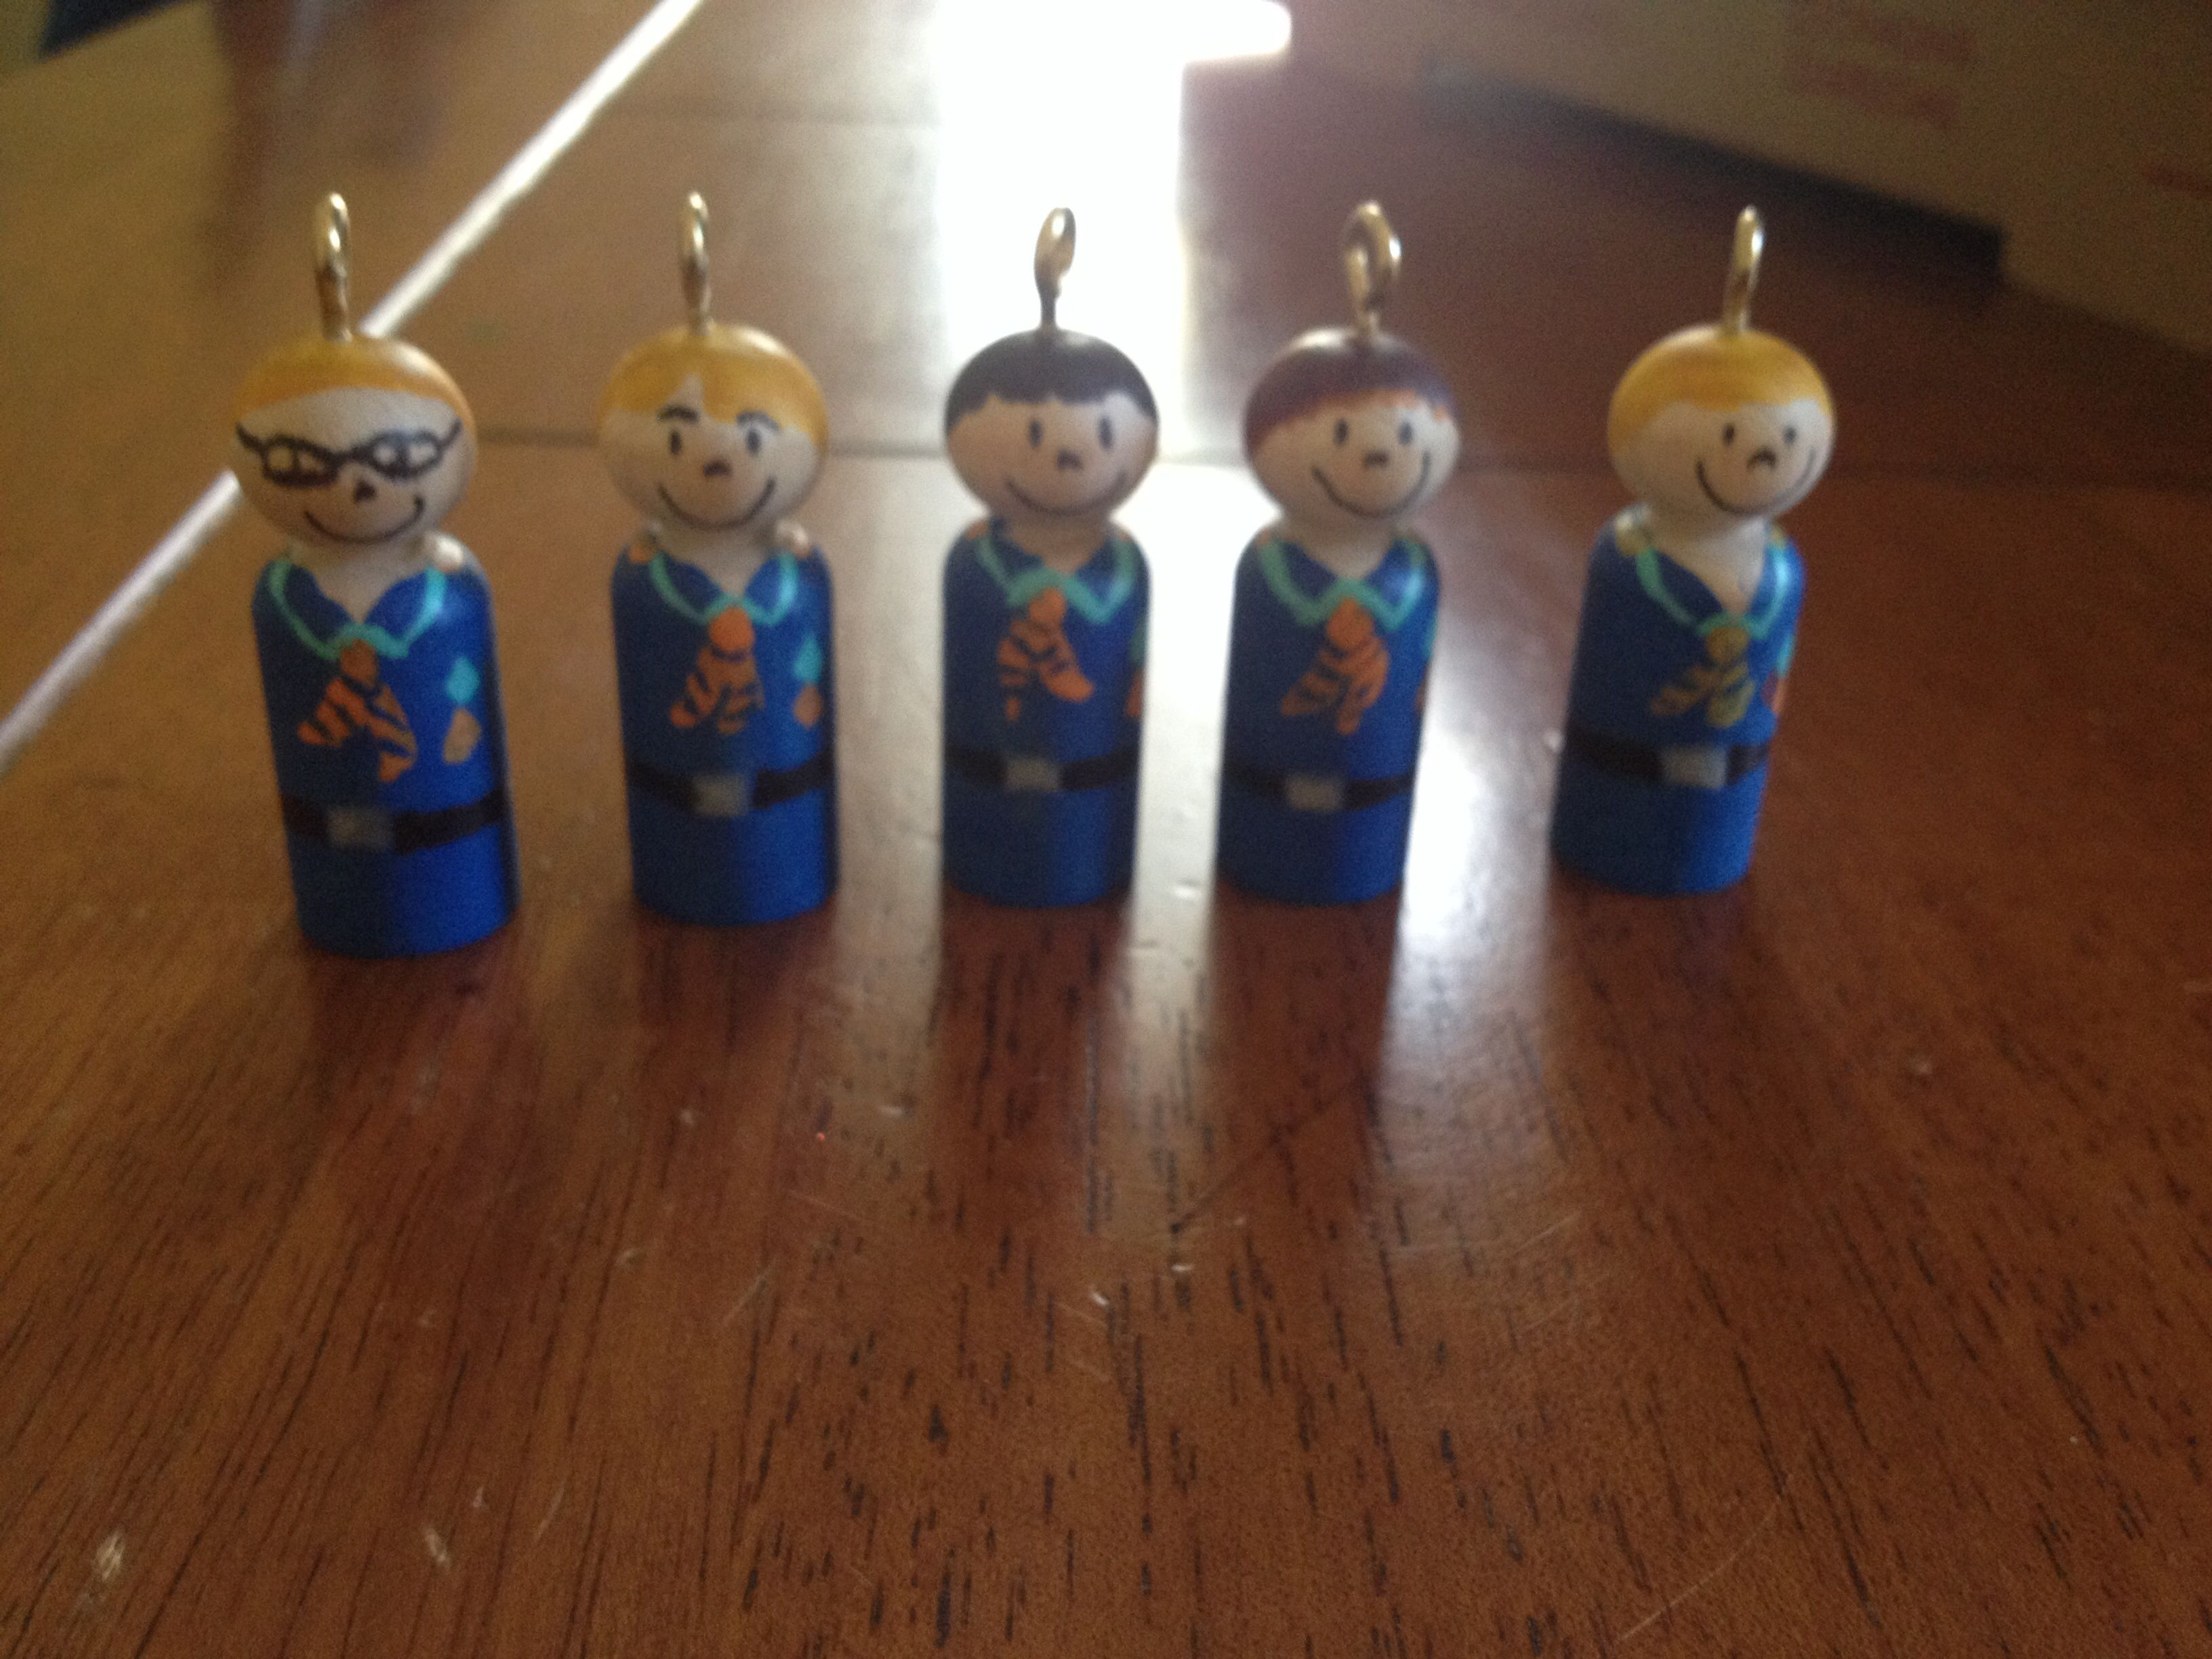 Cub scout peg doll ornaments peg people pinterest for Cub scout ornament craft